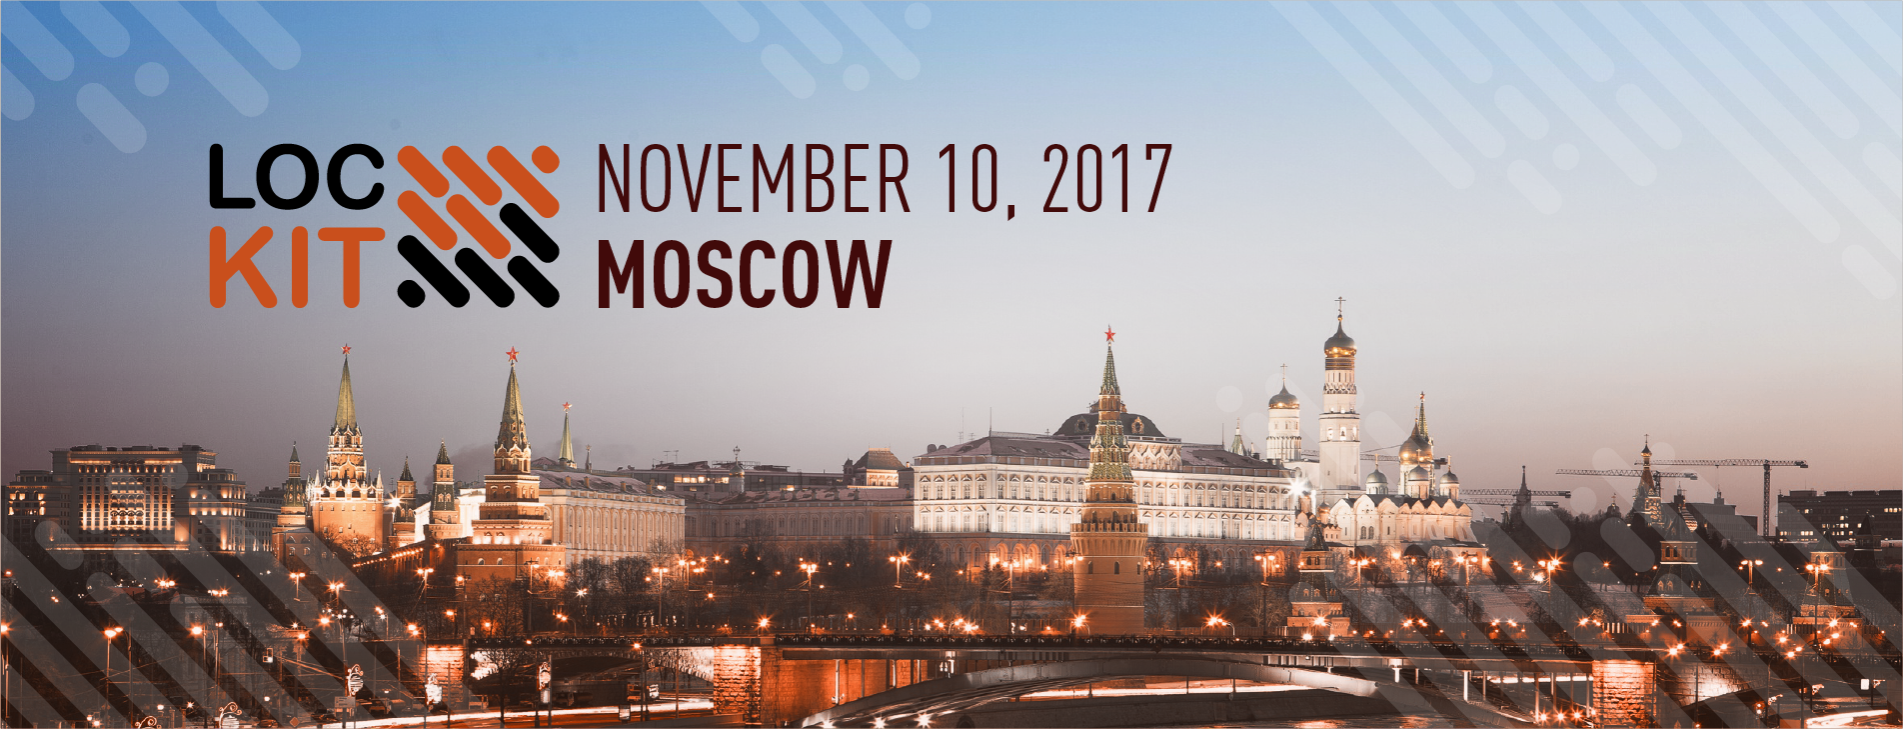 LocKit 2017, an International Conference Dedicated to Localization